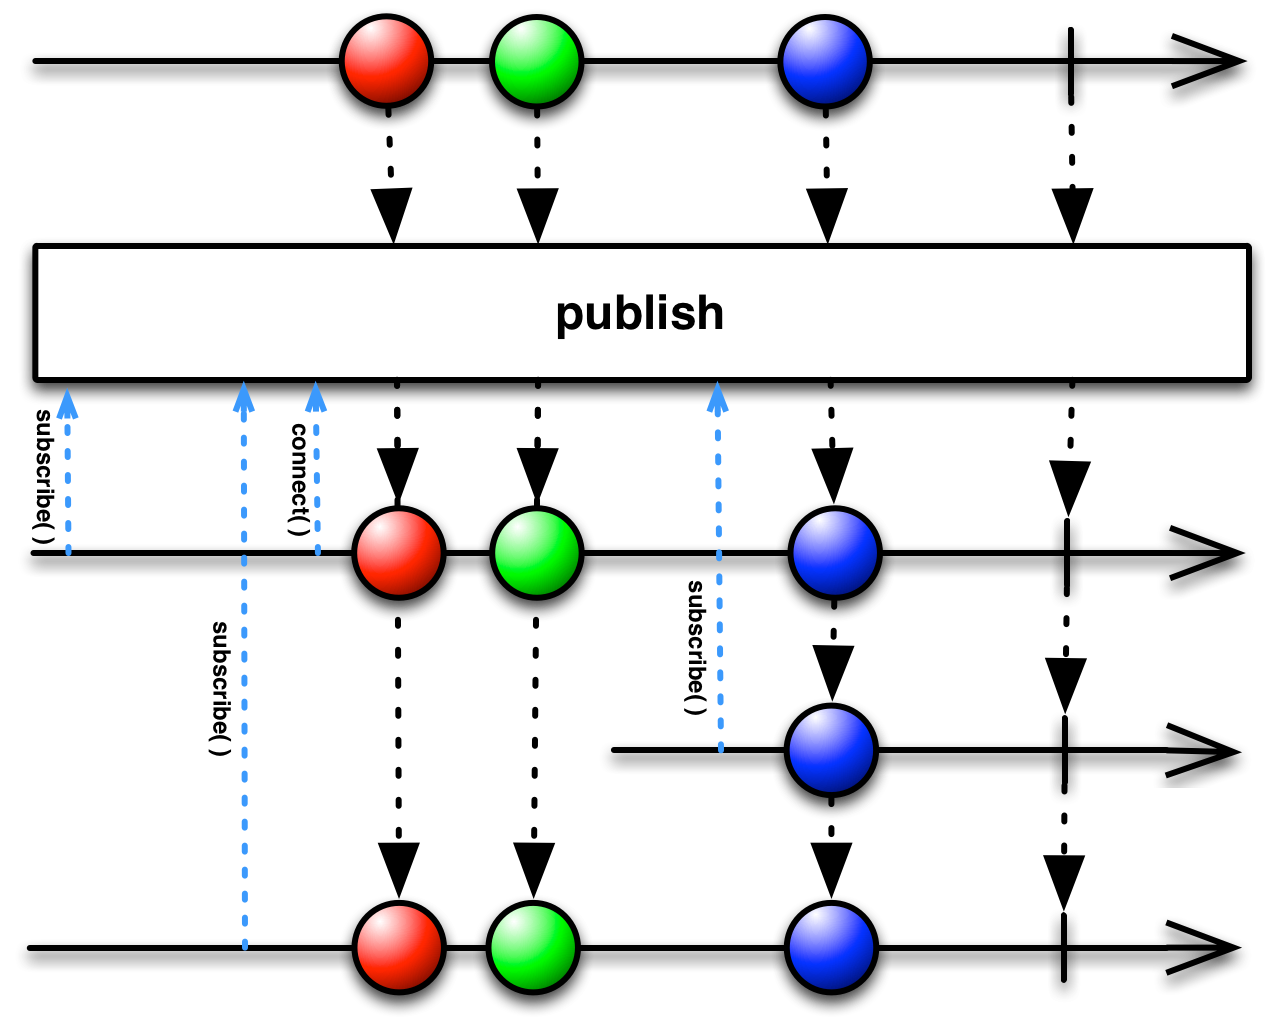 publishconnect